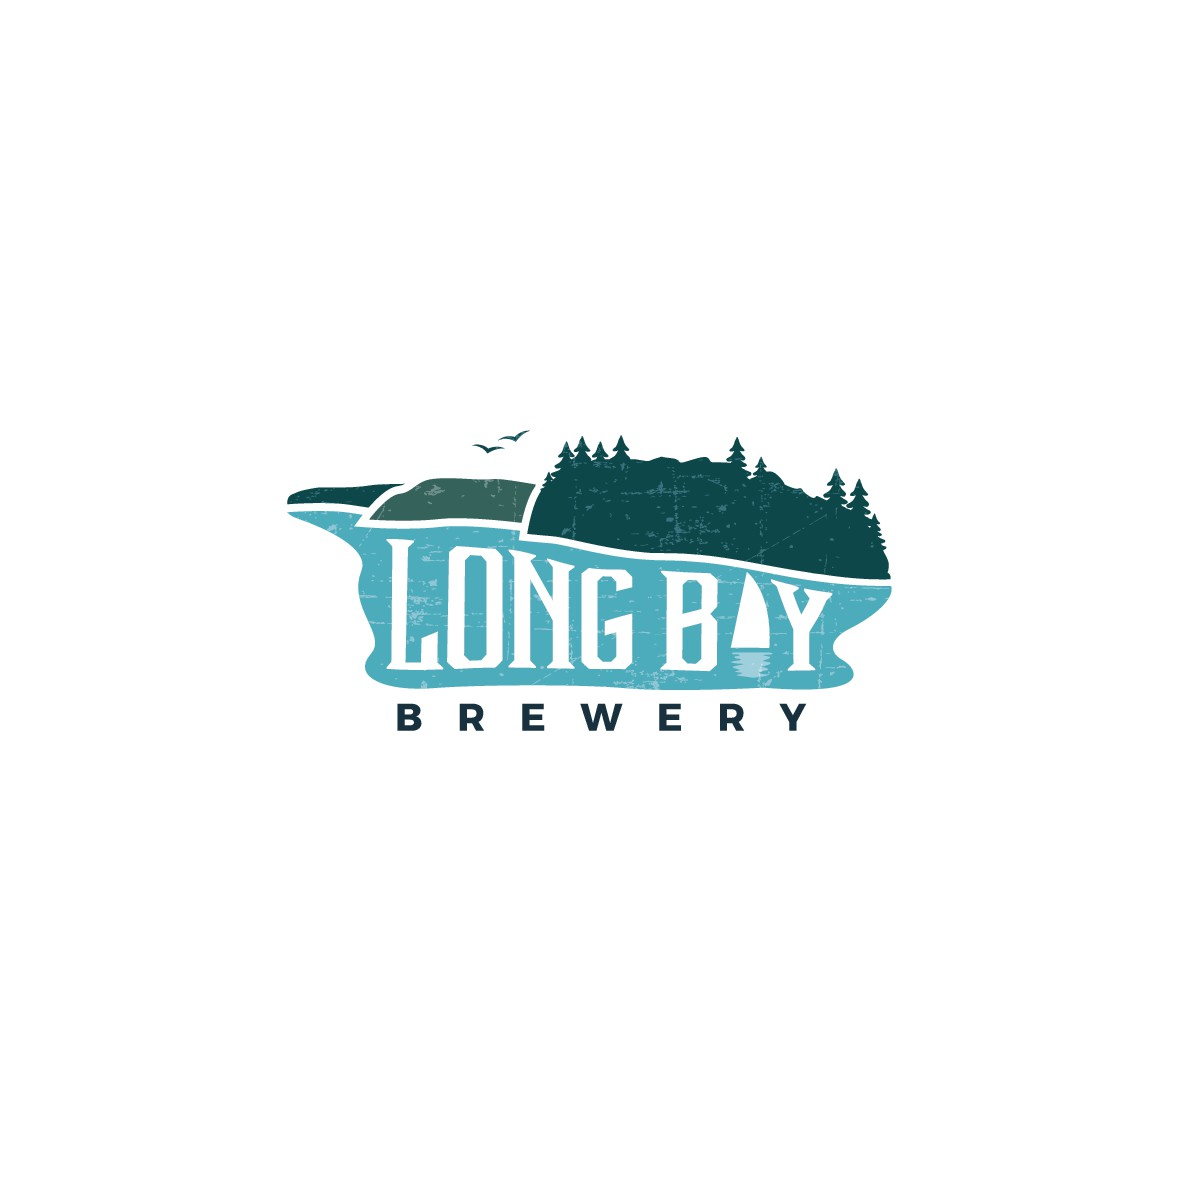 Create a logo for a brew pub